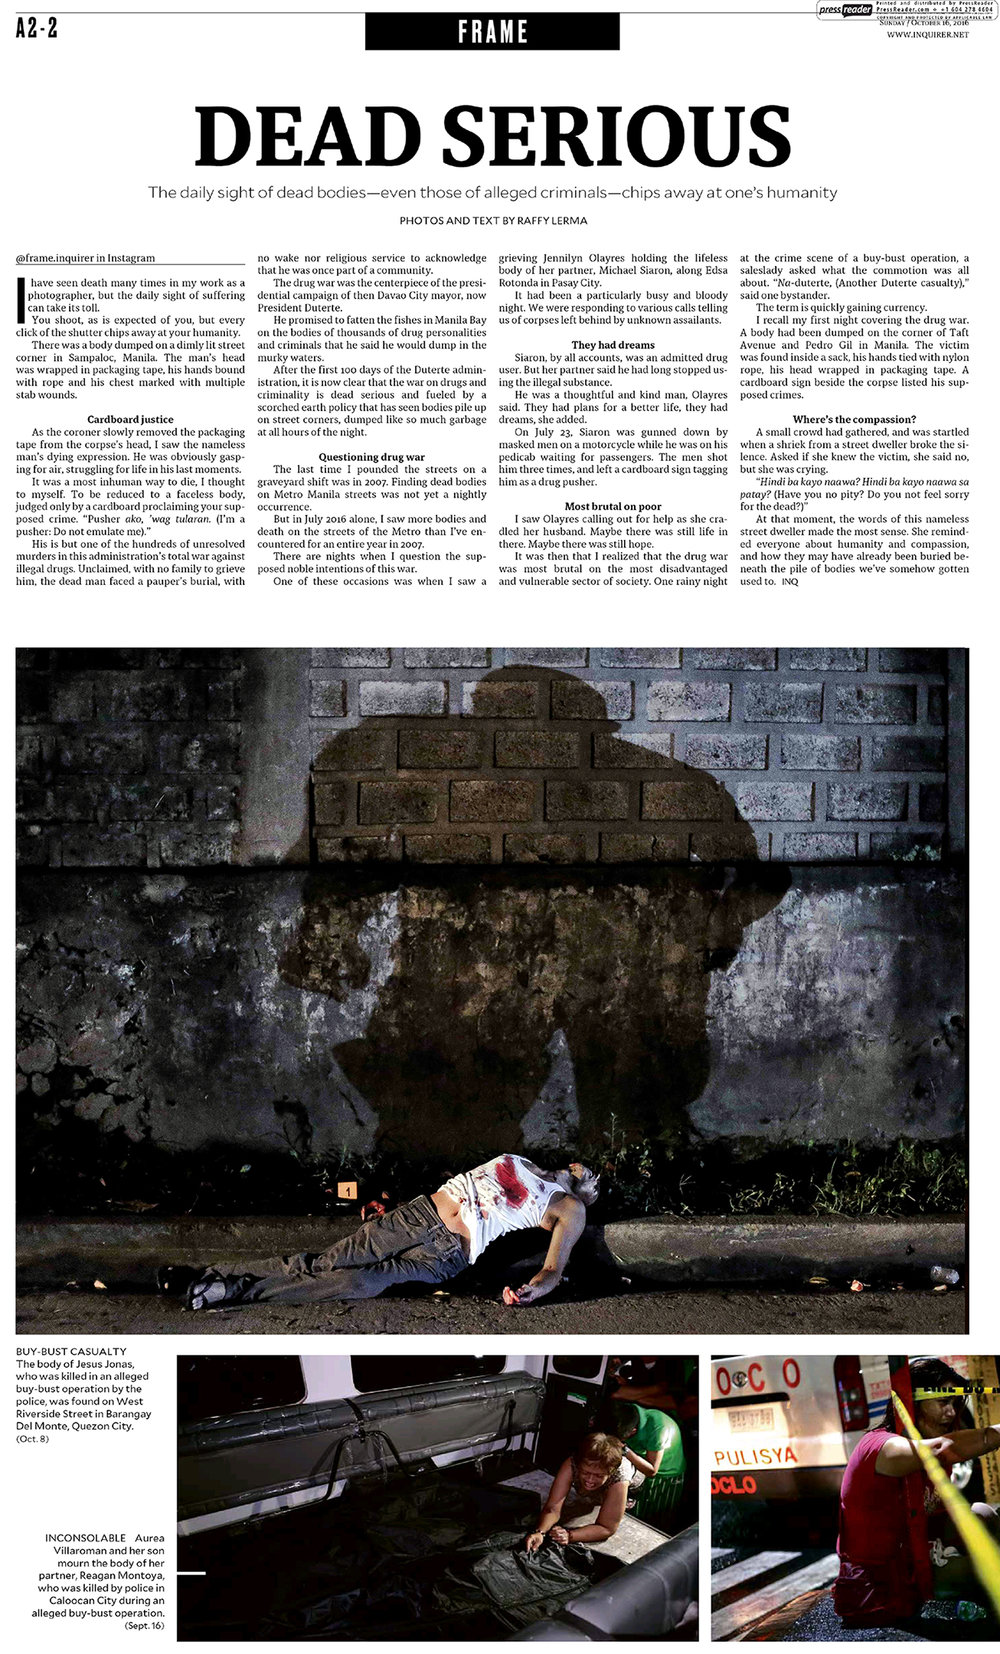 Philippine Daily Inquirer Digital Edition3.JPG